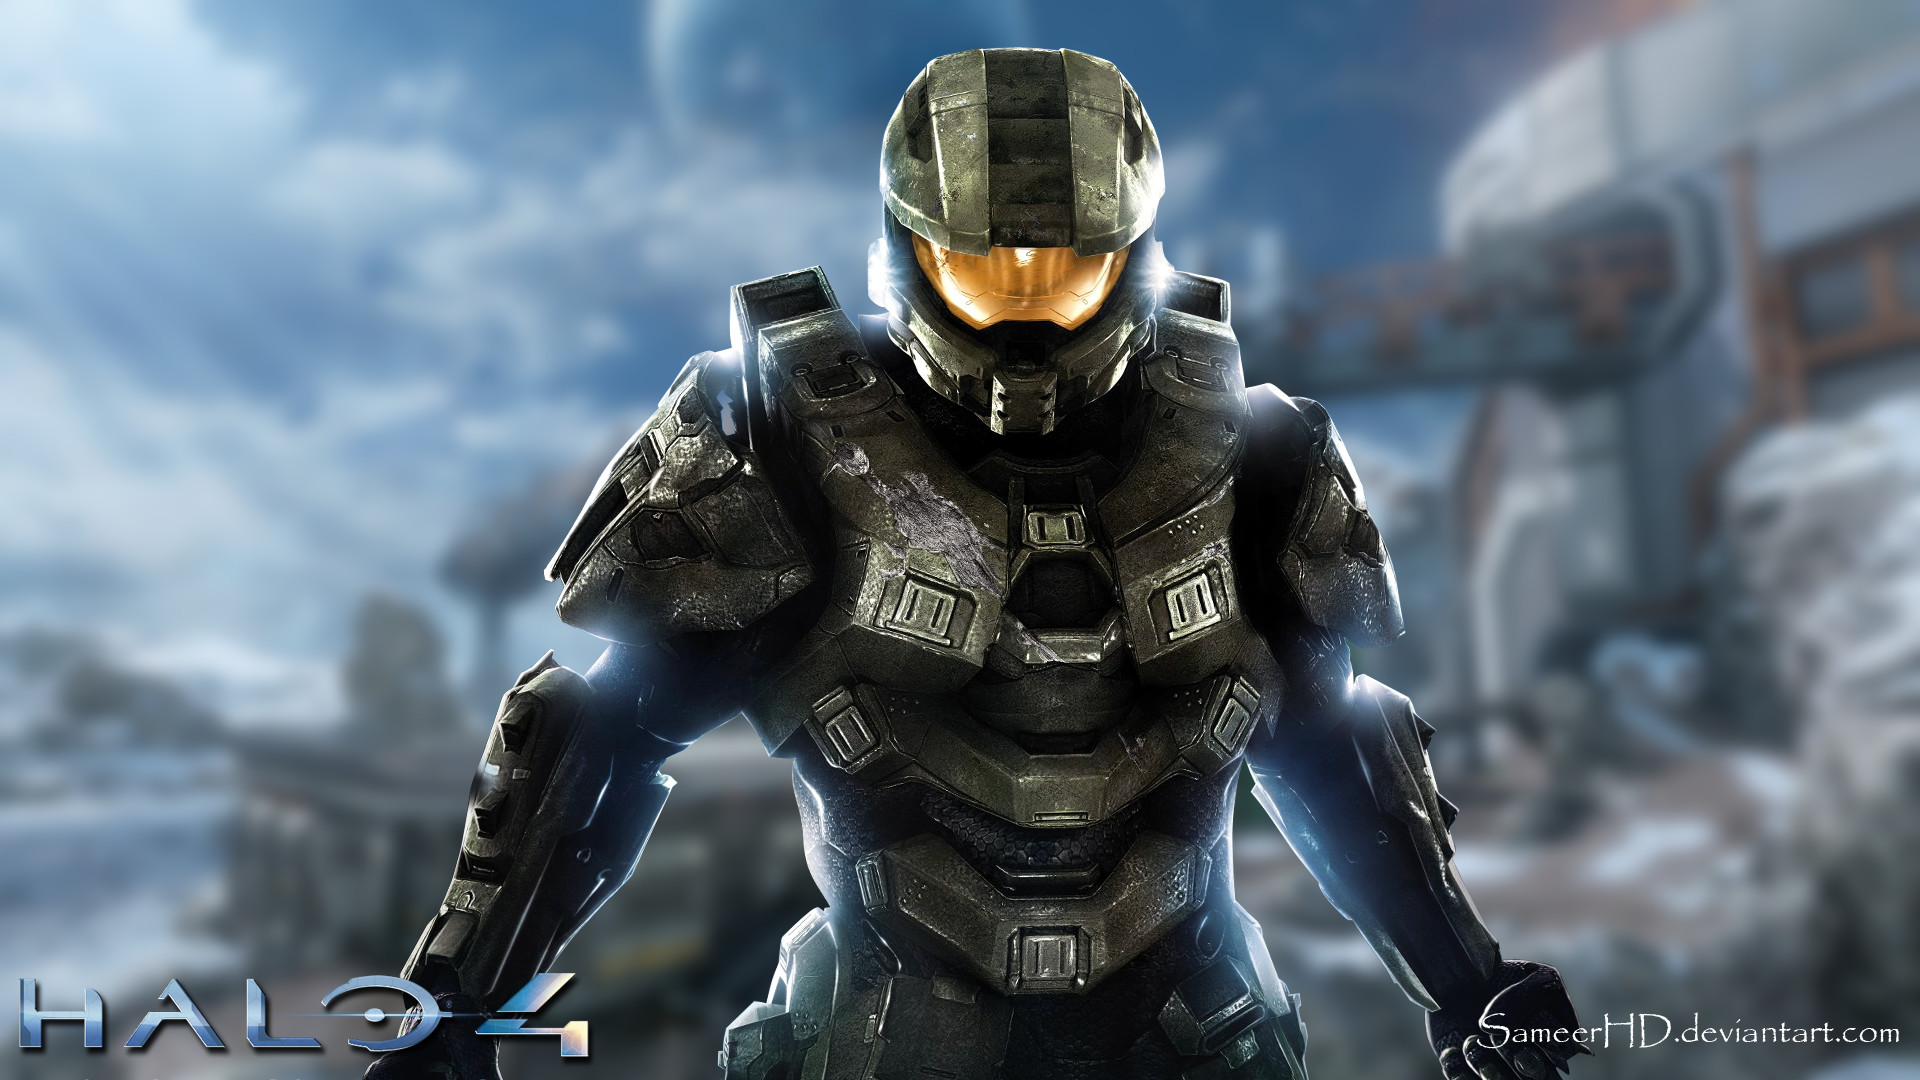 1920x1080 ... Halo 4 Master Chief Wallpaper by SameerHD